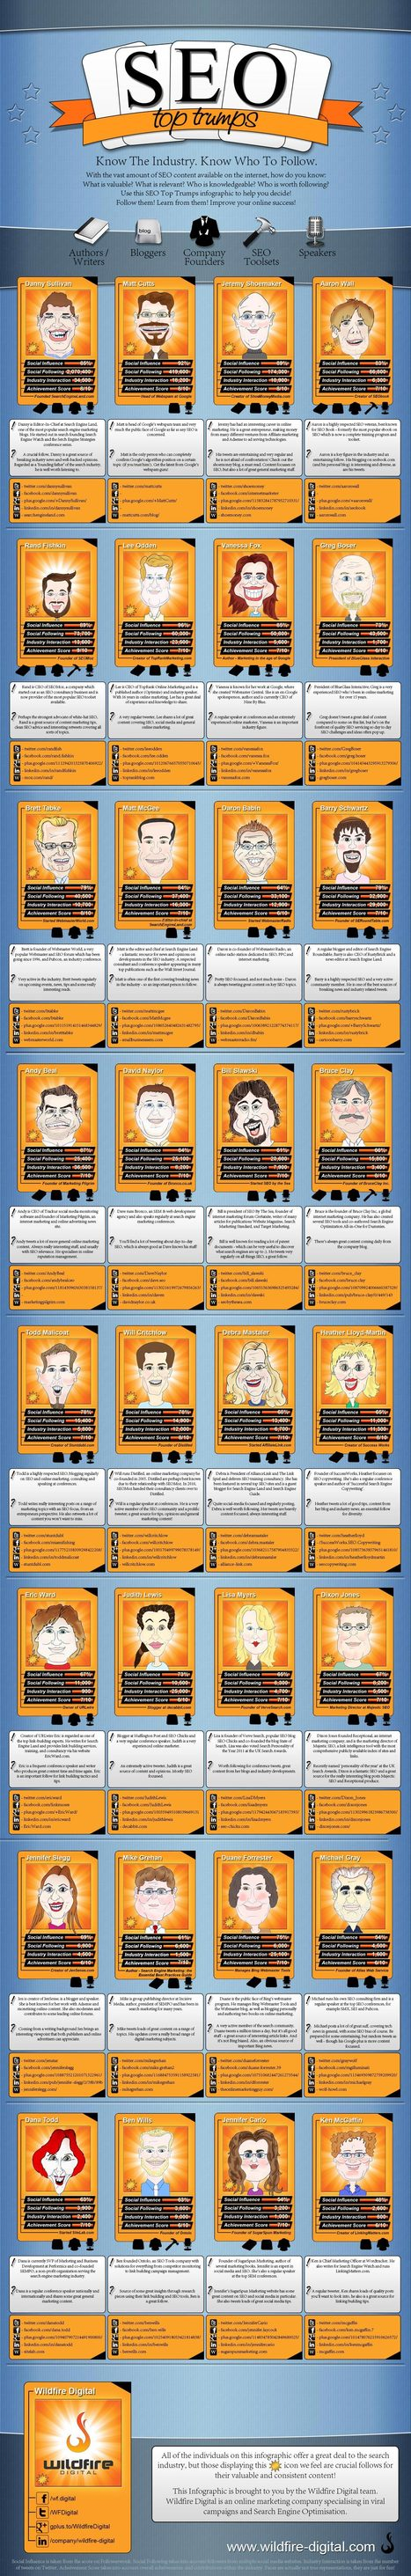 SEO Top Trumps: Know Who To Follow [Infographic]   MKG 2680 Olds   Scoop.it